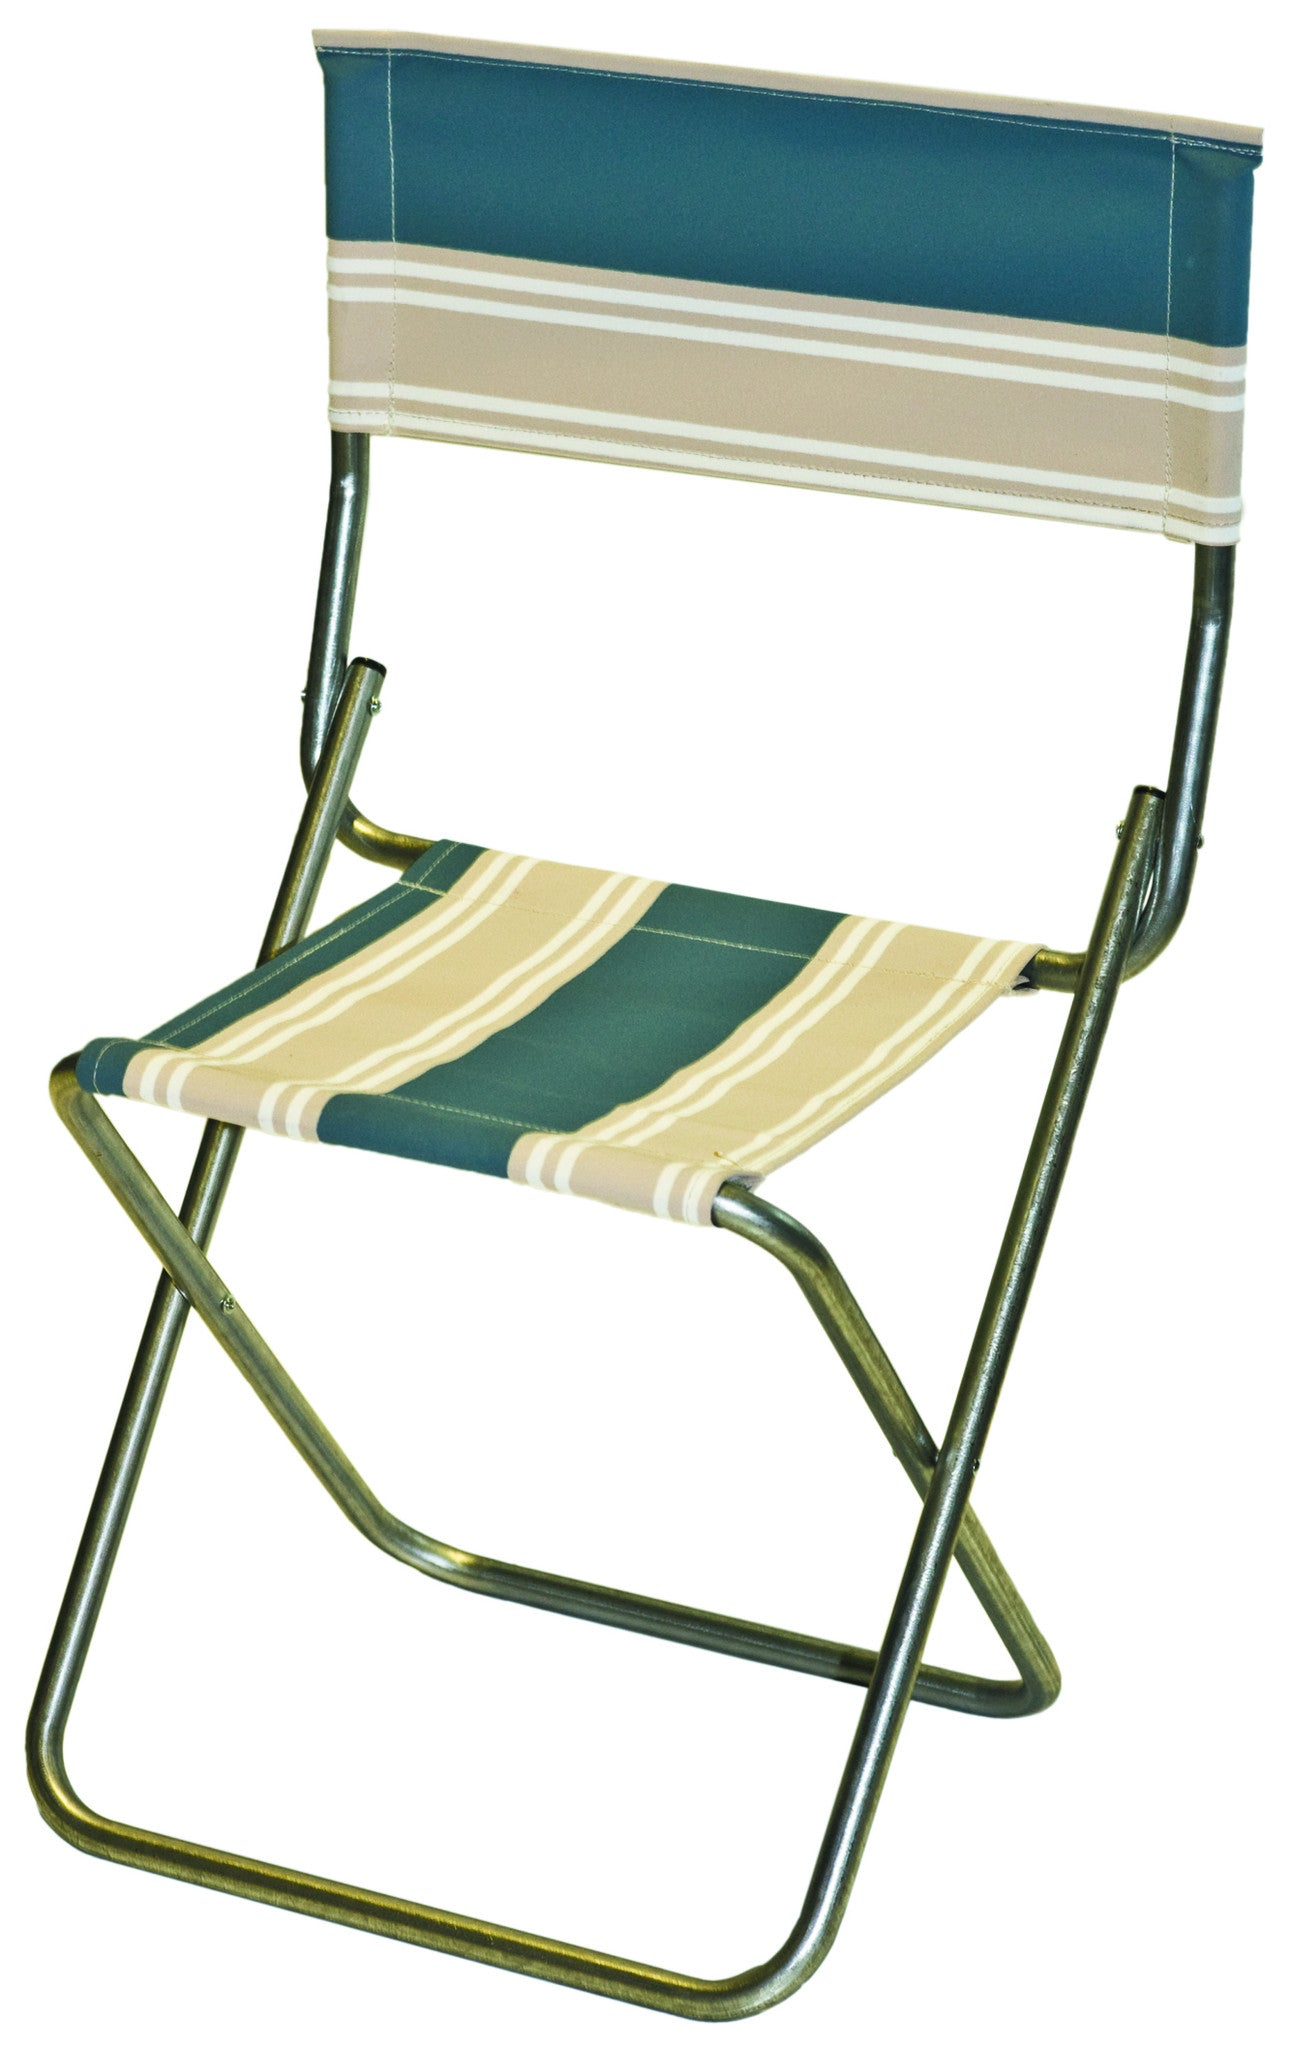 Genial Camping Fishing Chair Stool King Size Folding Camping Hiking